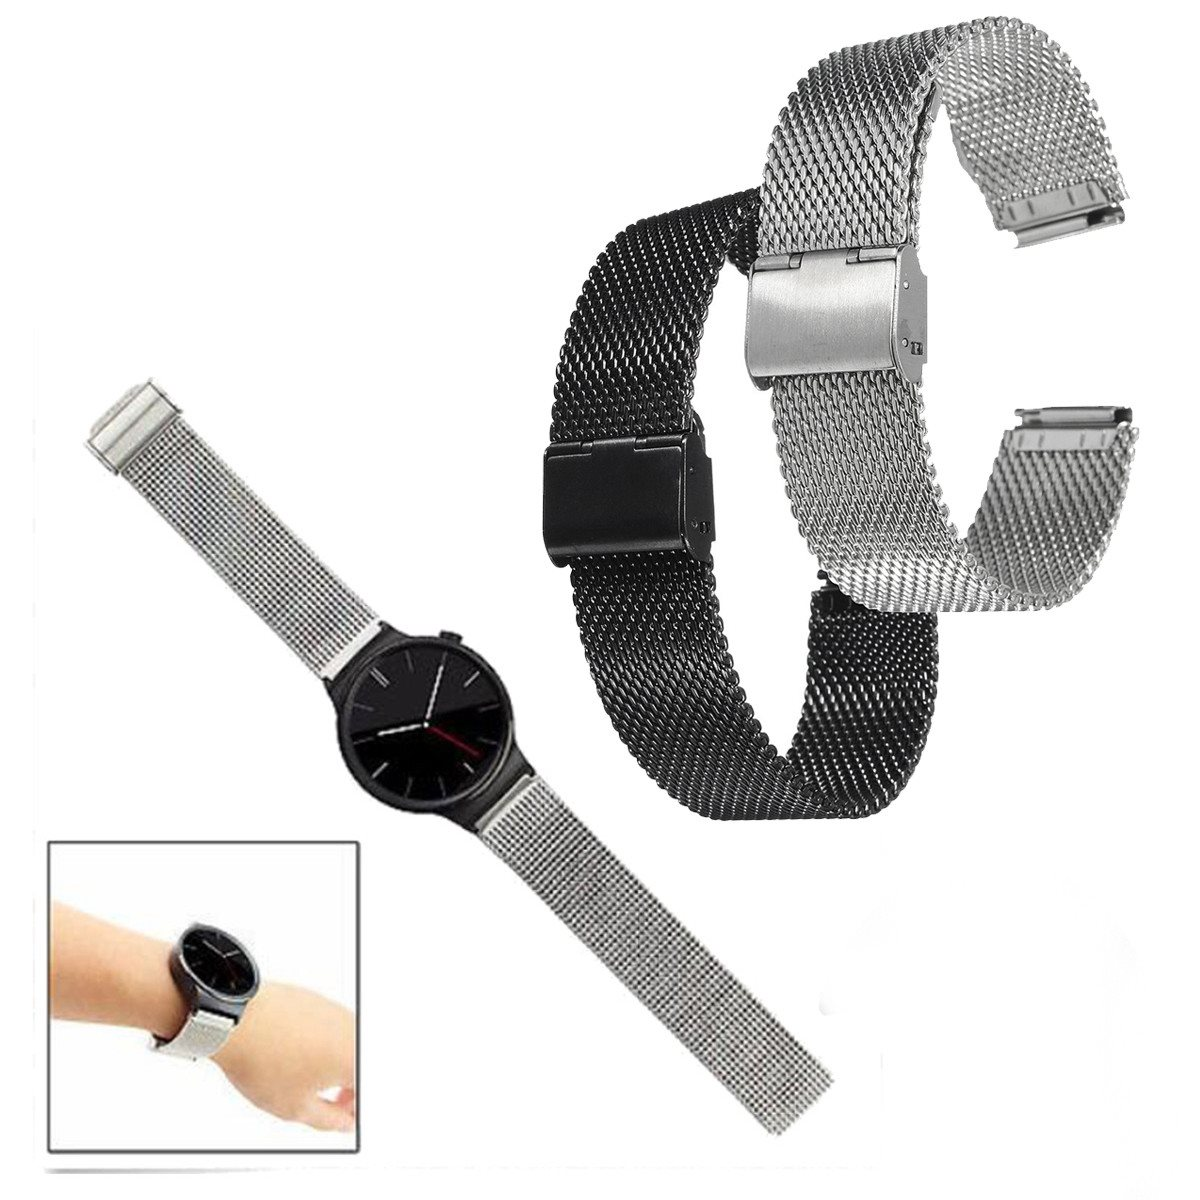 Milanese Mesh Loop Wrist Watch Bands 22mm Stainless Steel Watchband Strap Bracelet For Business Smart Watches Black Silver stylish 8 led blue light digit stainless steel bracelet wrist watch black 1 cr2016